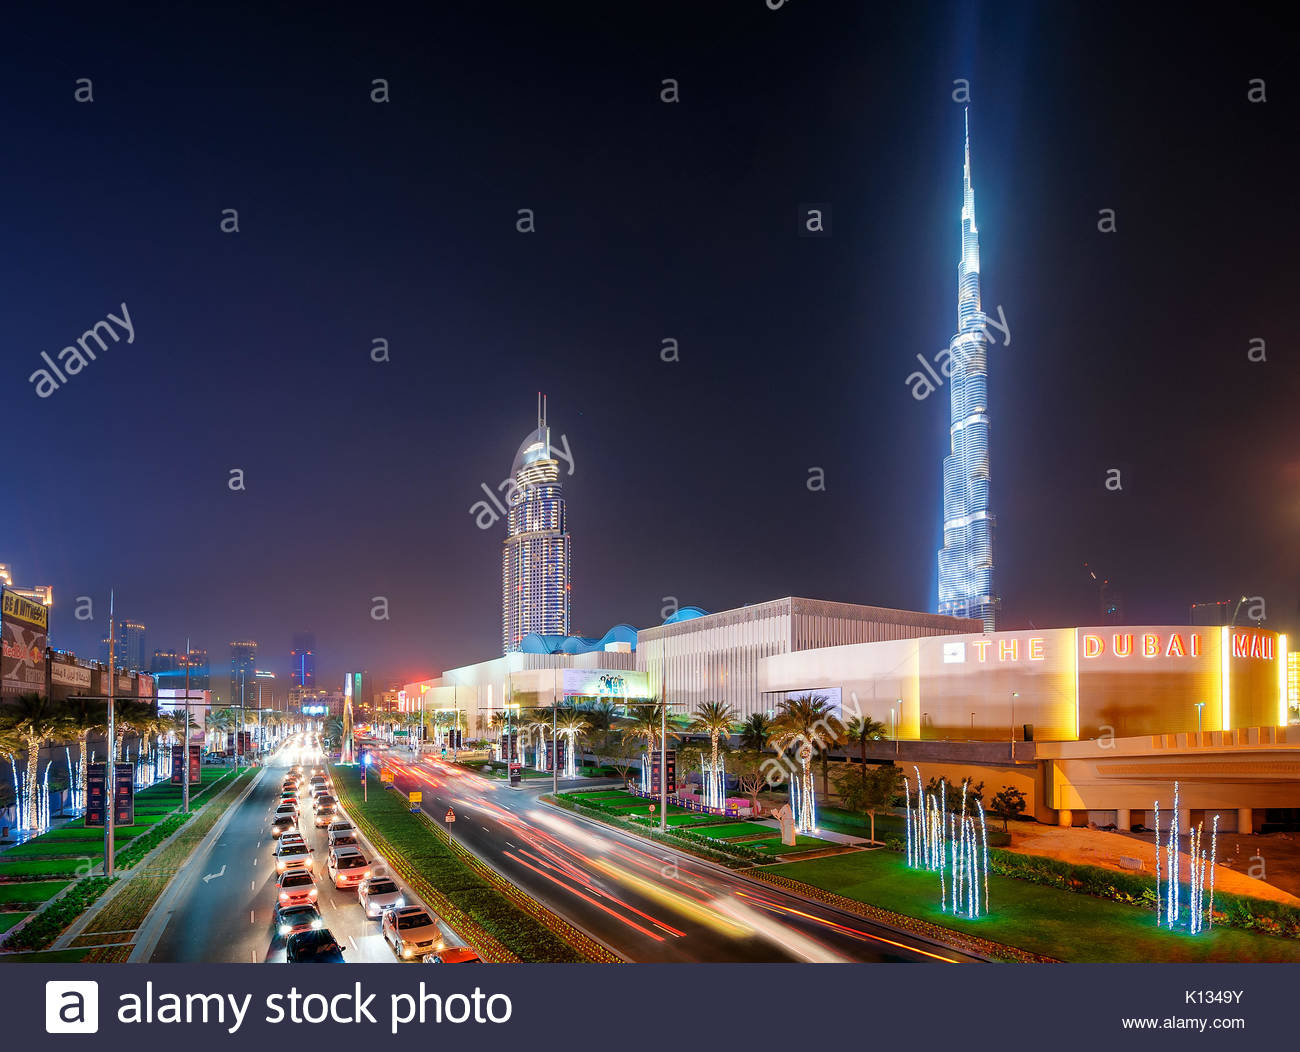 DUBAI, UAE - APR 12, 2013: Amazing night dubai downtown skyline with tallest skyscrapers and biggest shop Dubai - Stock Image